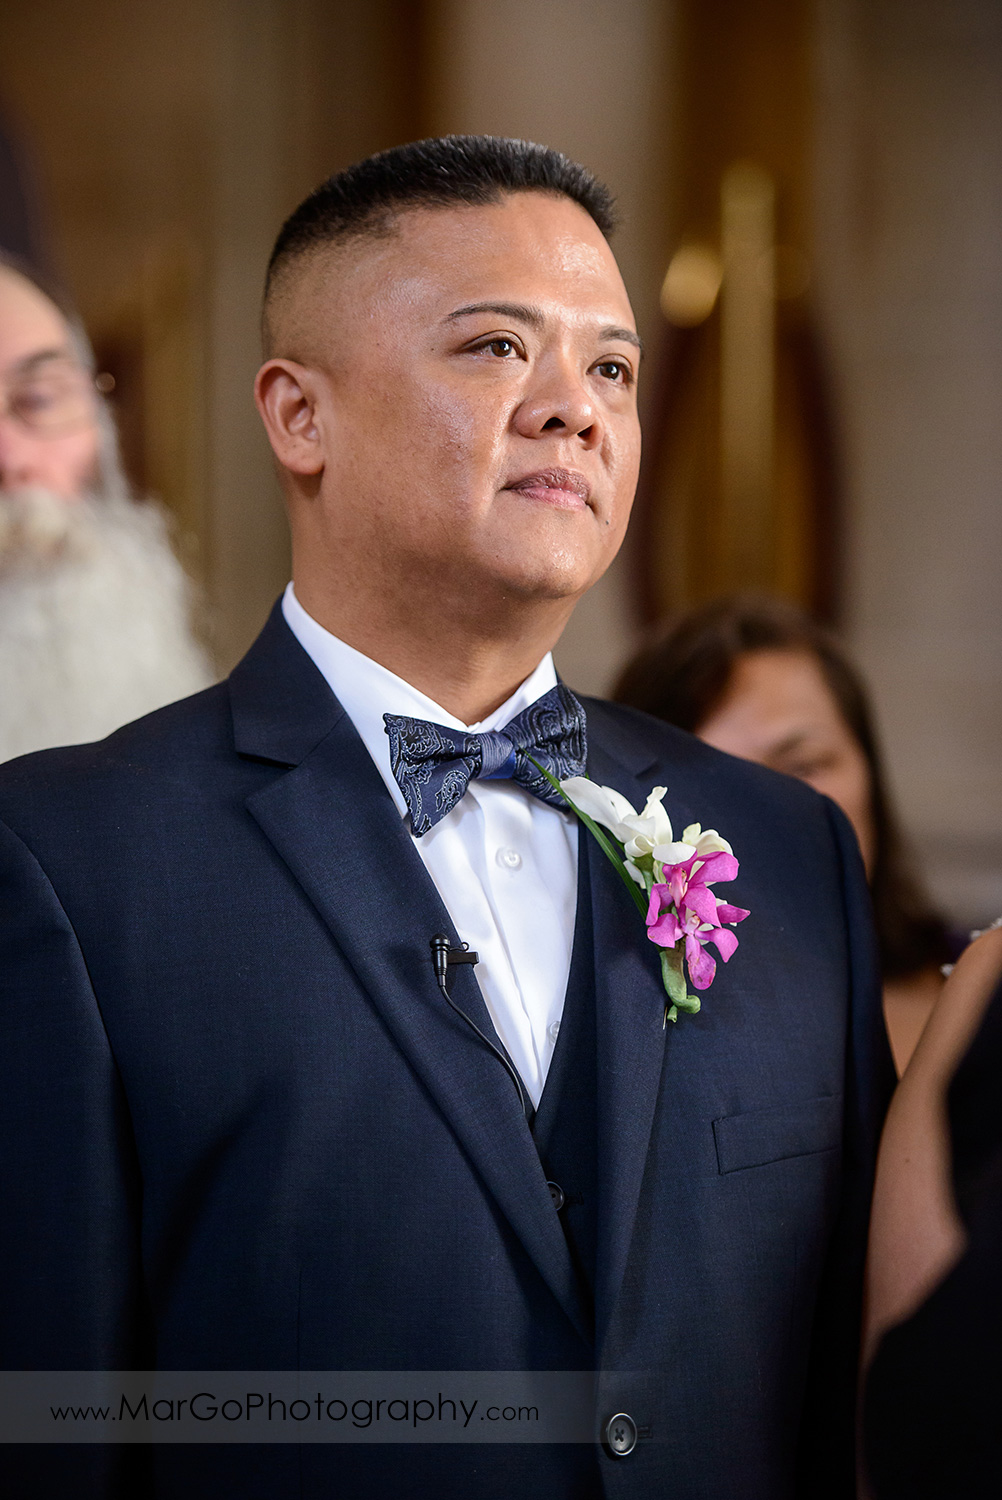 portrait of the groom during wedding ceremony at San Francisco City Hall